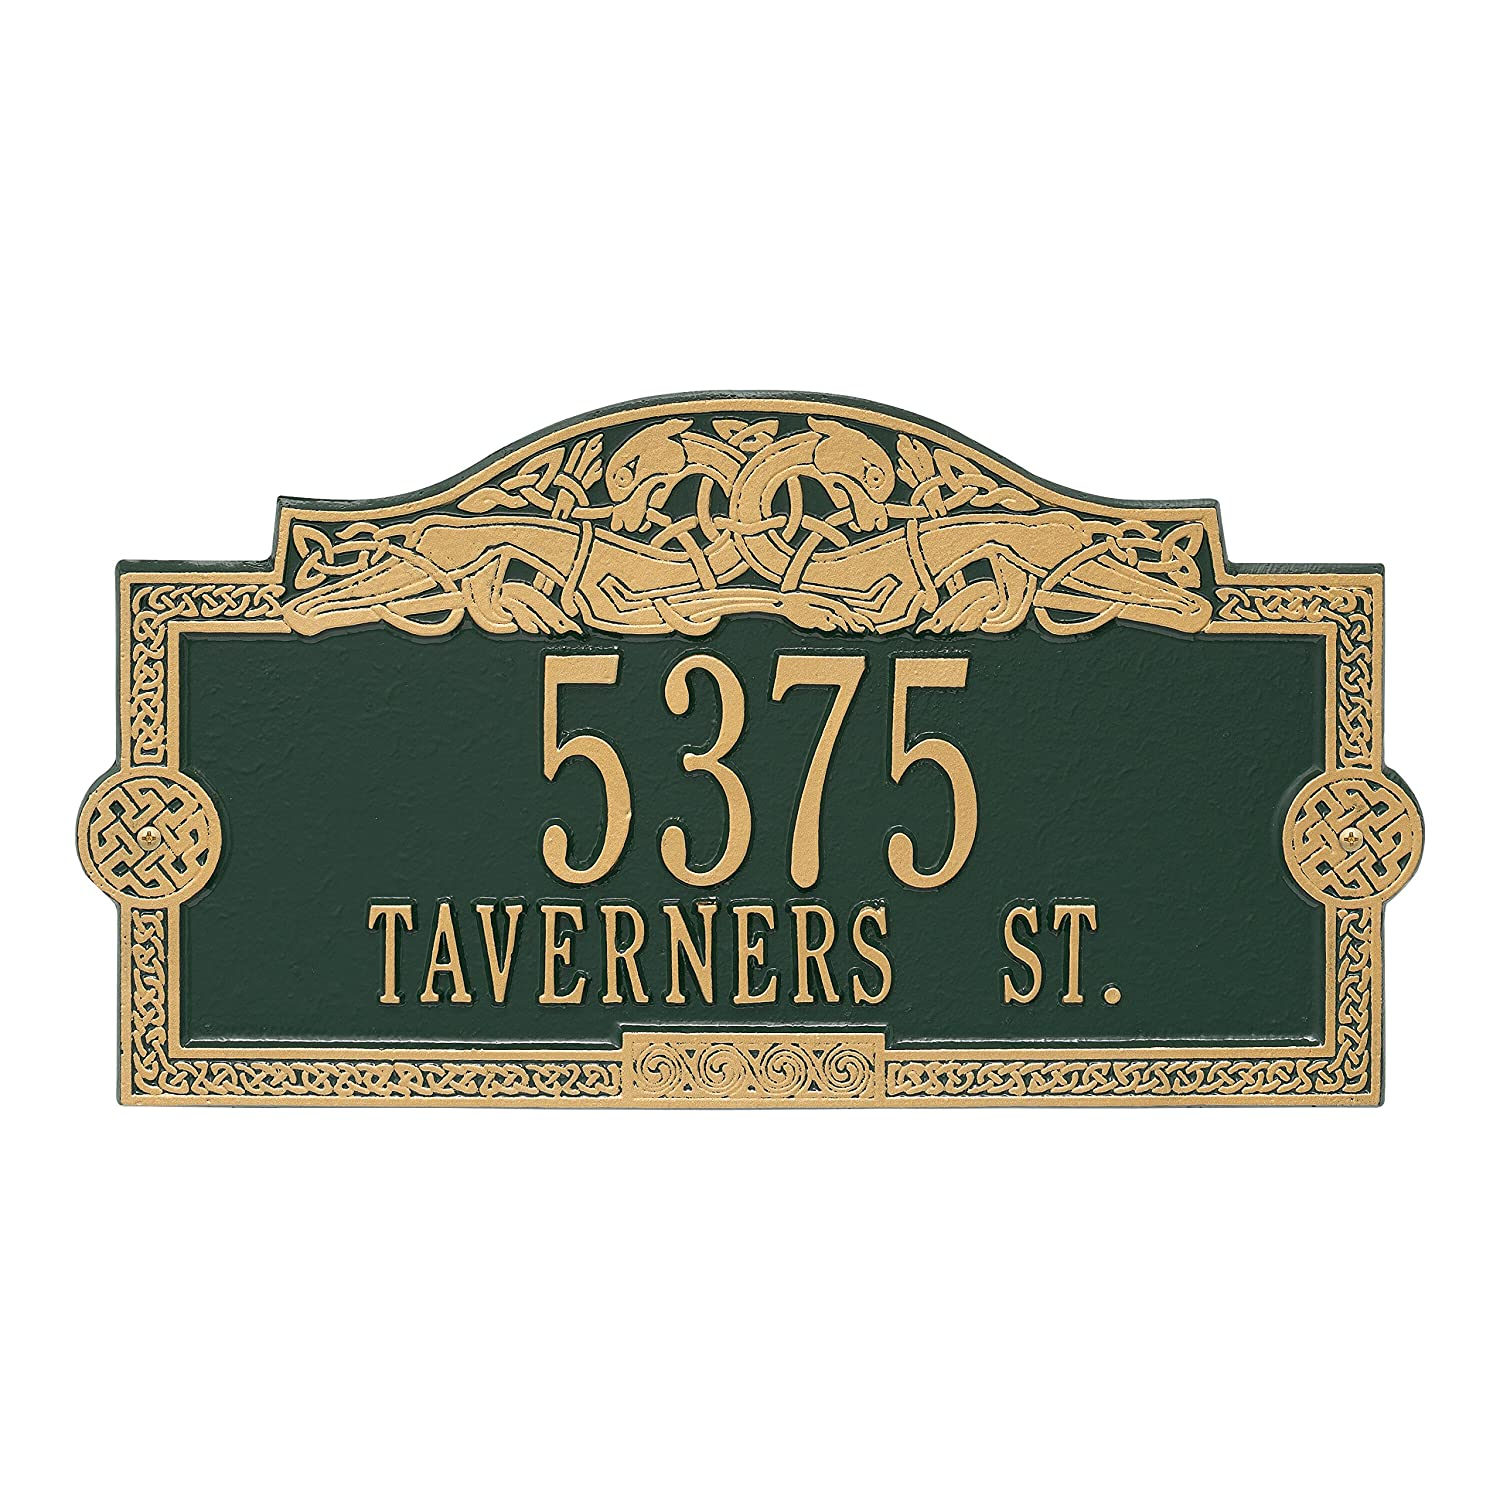 Whitehall Personalized Indoor/Outdoor Cast Irish Celtic Dragon Address Plaque Sign with House Number and Street Name (Antique Copper) Whitehall Products